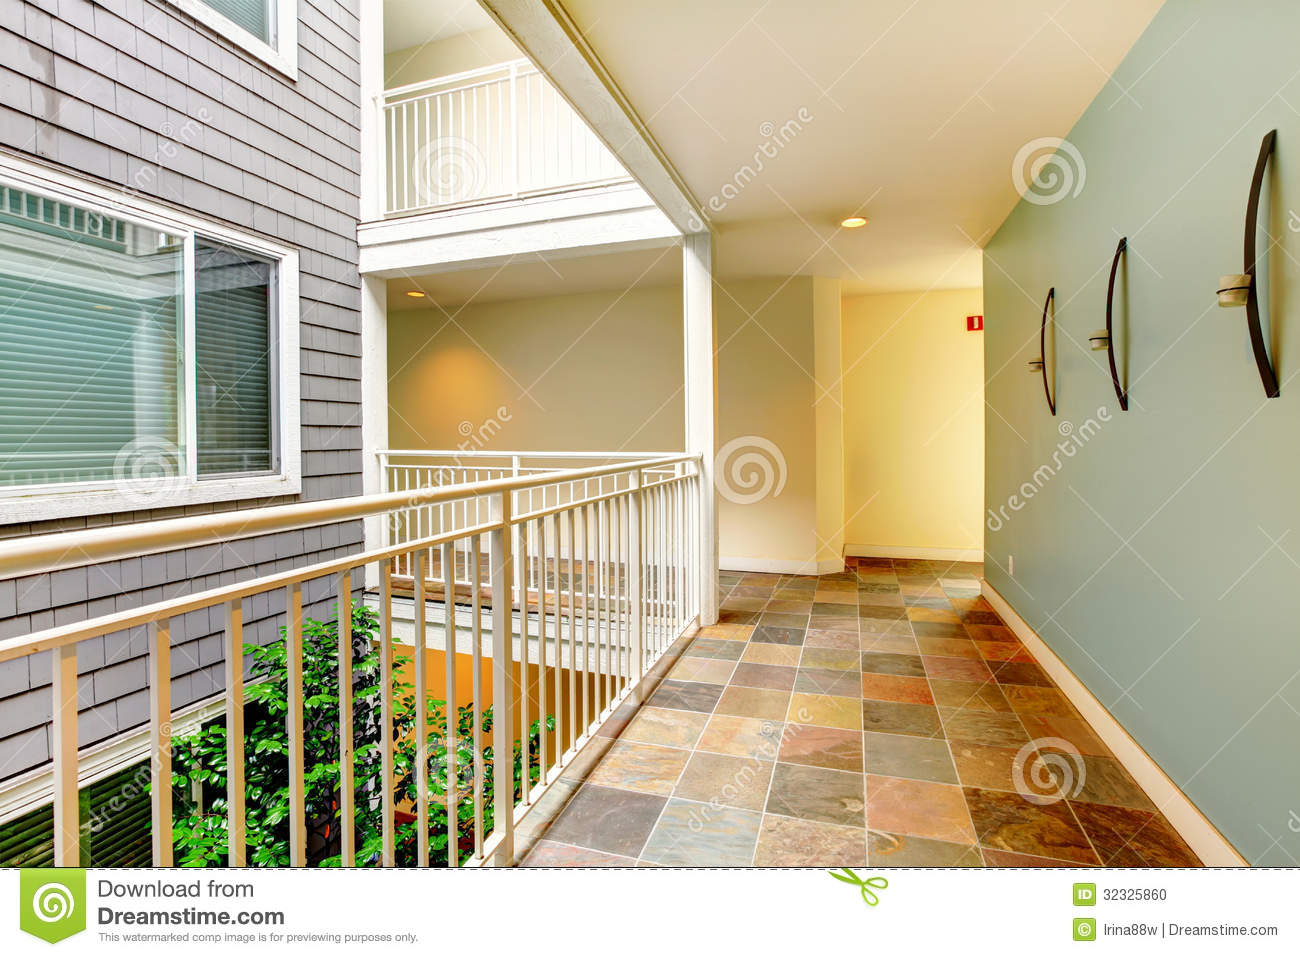 Modern Apartment Building Hallway And Door Near Railing Stock